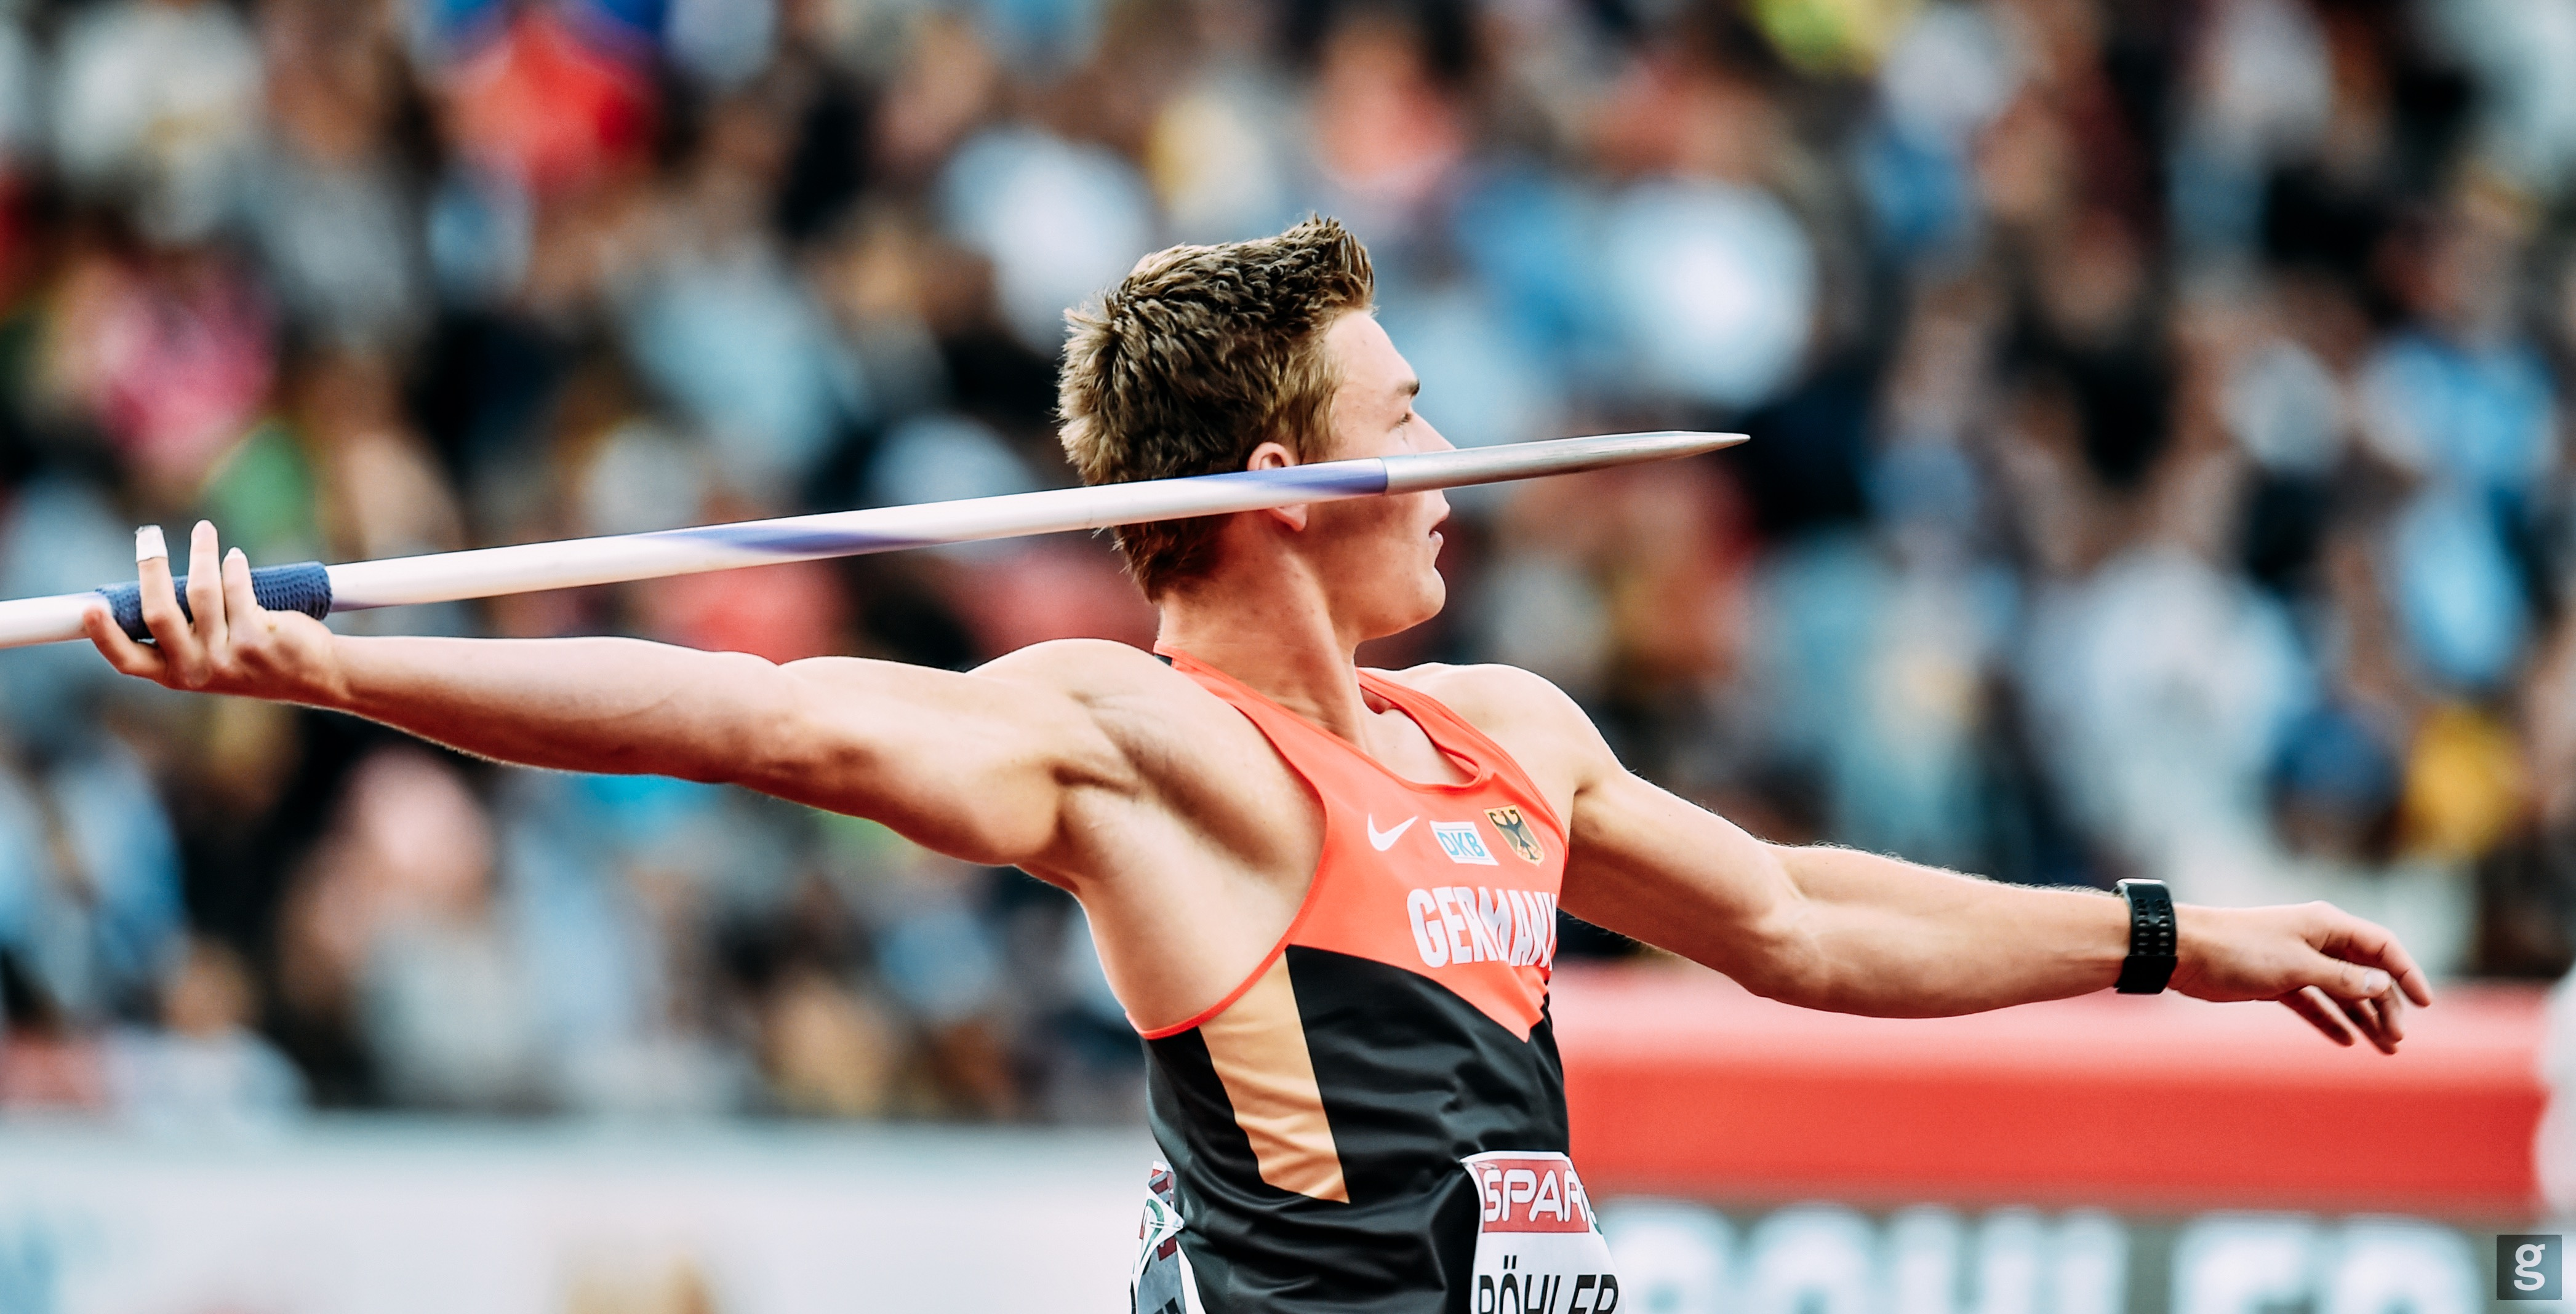 Thomas Röhler throwing javelin in competition at European championships 2016